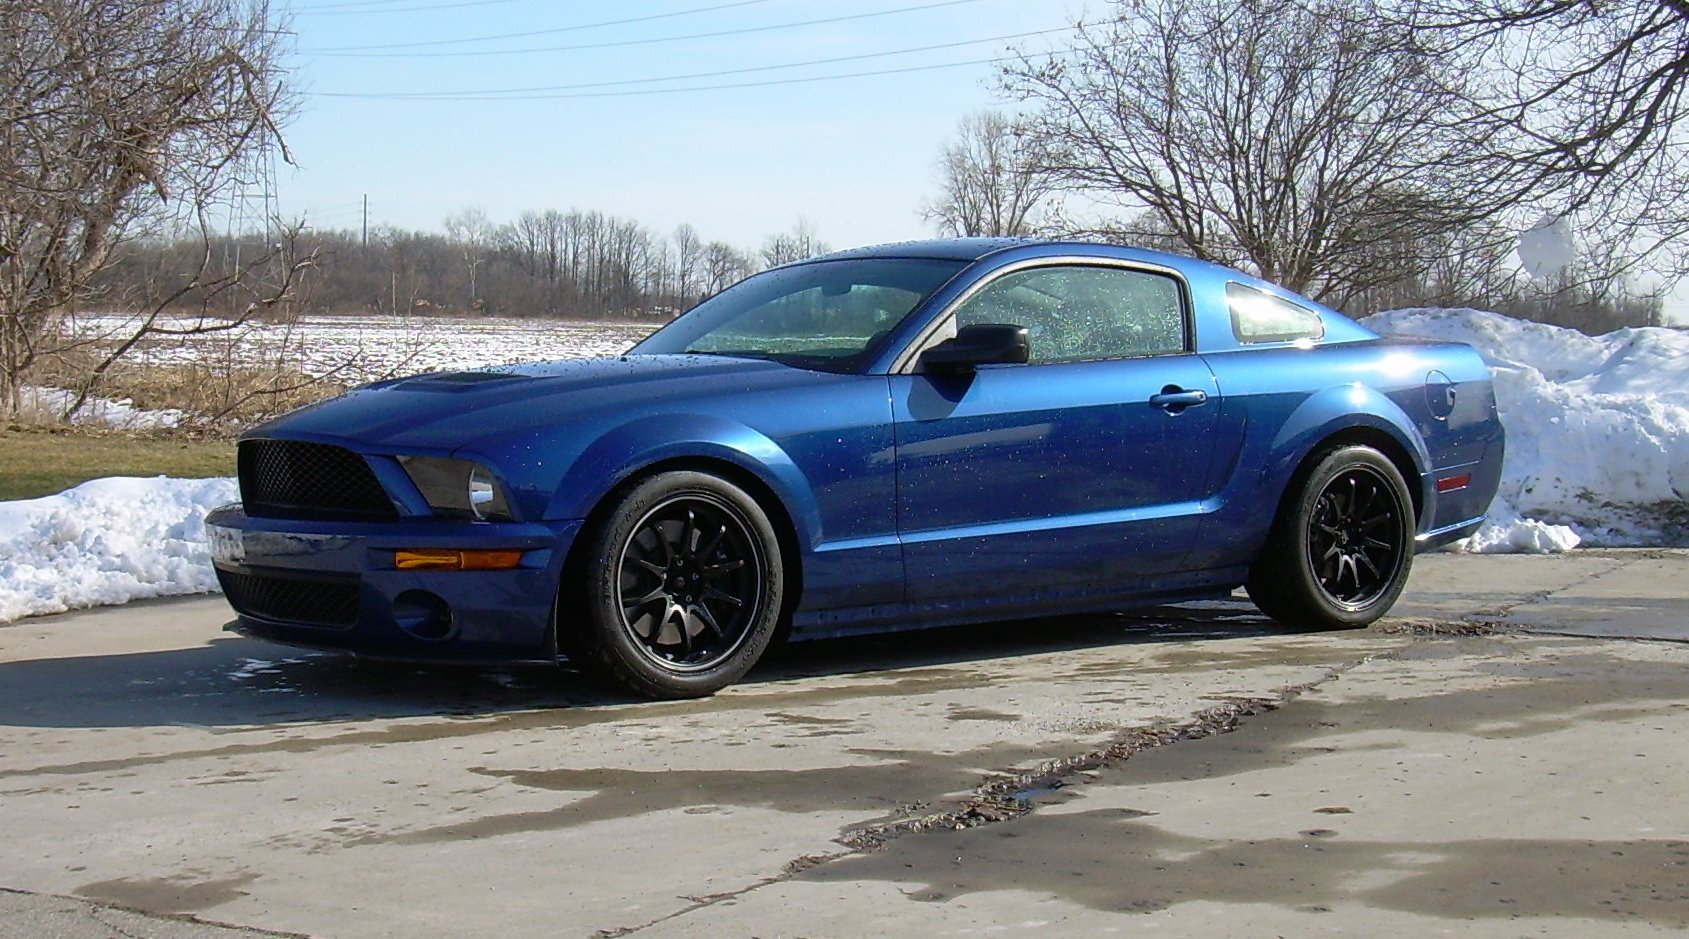 2019 Gt 500 >> Is anyone running Volk wheels on the S197? - Ford Mustang Forum